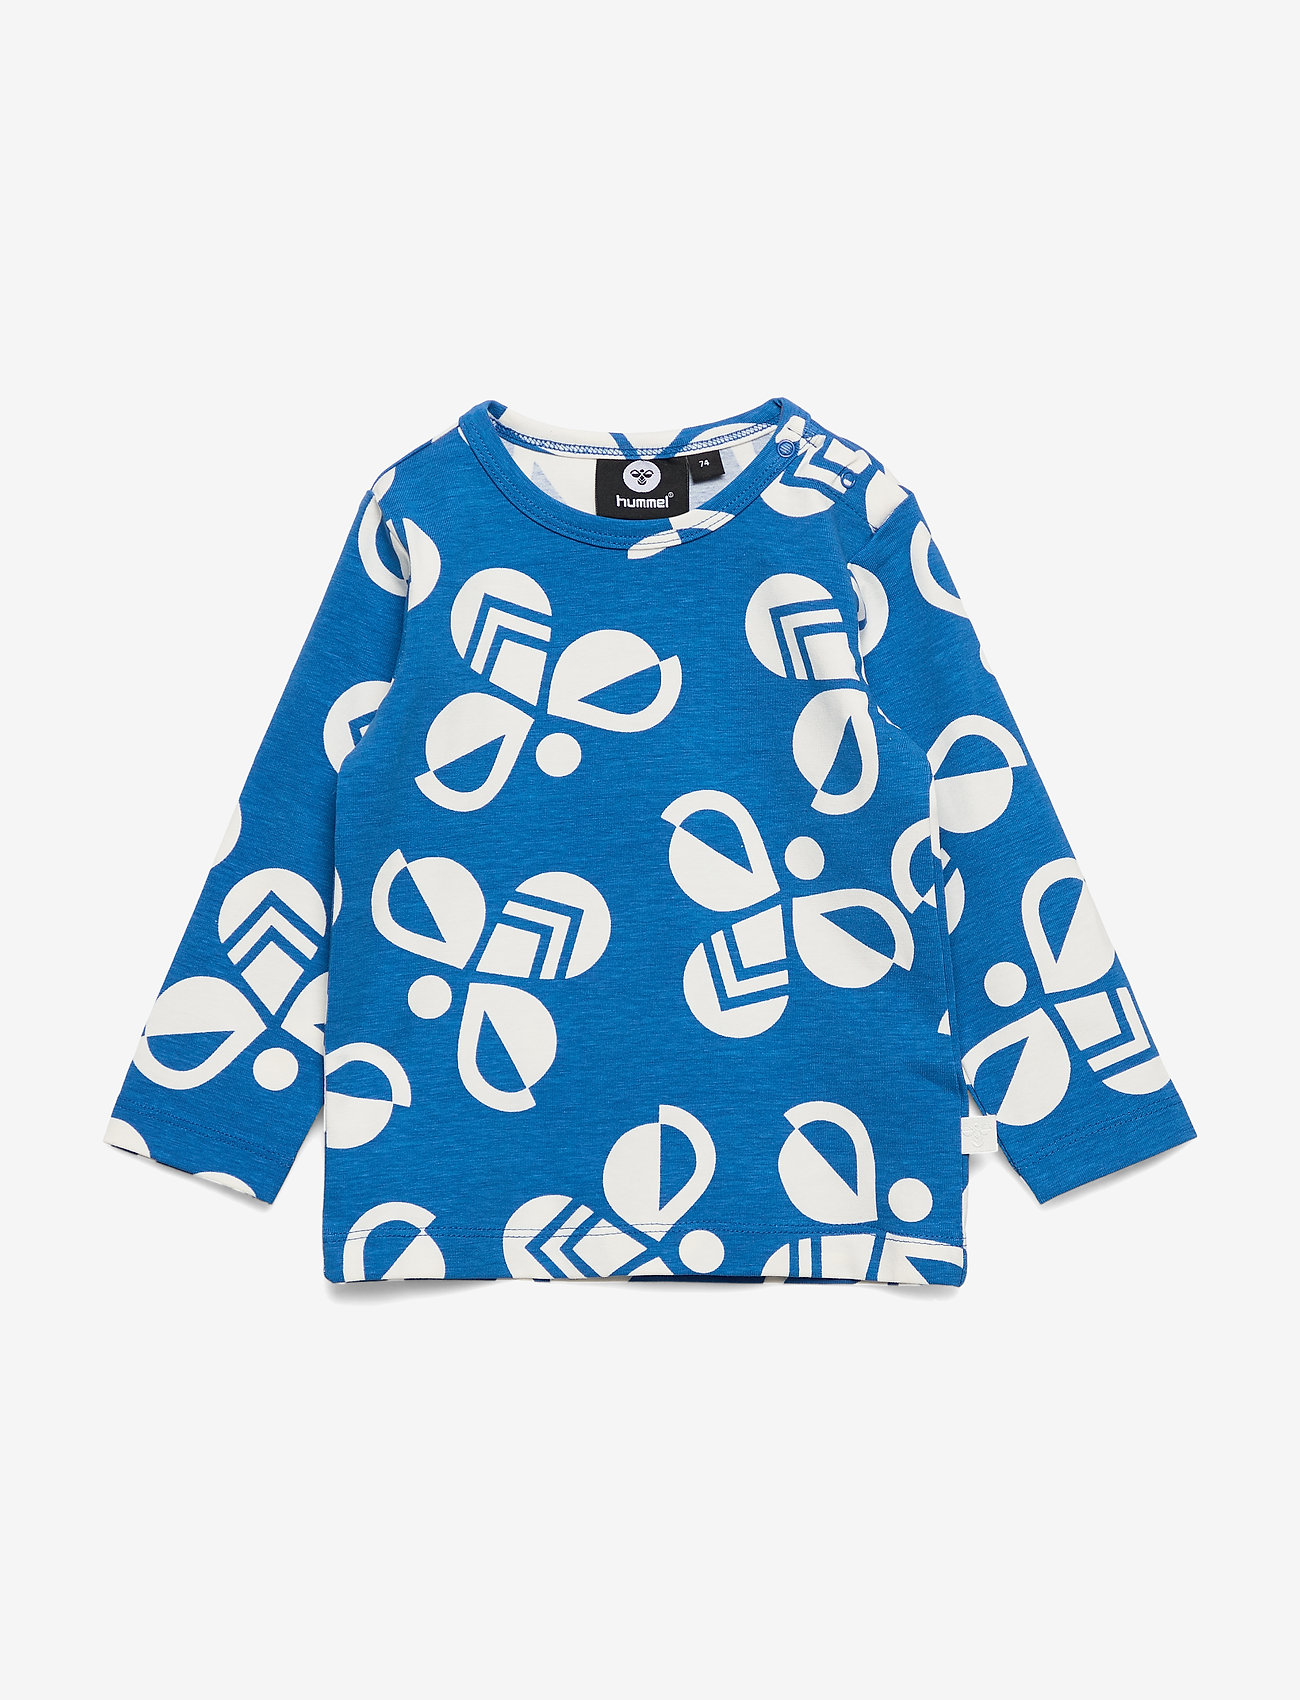 Hummel - hmlCHARLIE T-SHIRT L/S - long-sleeved t-shirts - directoire blue - 0